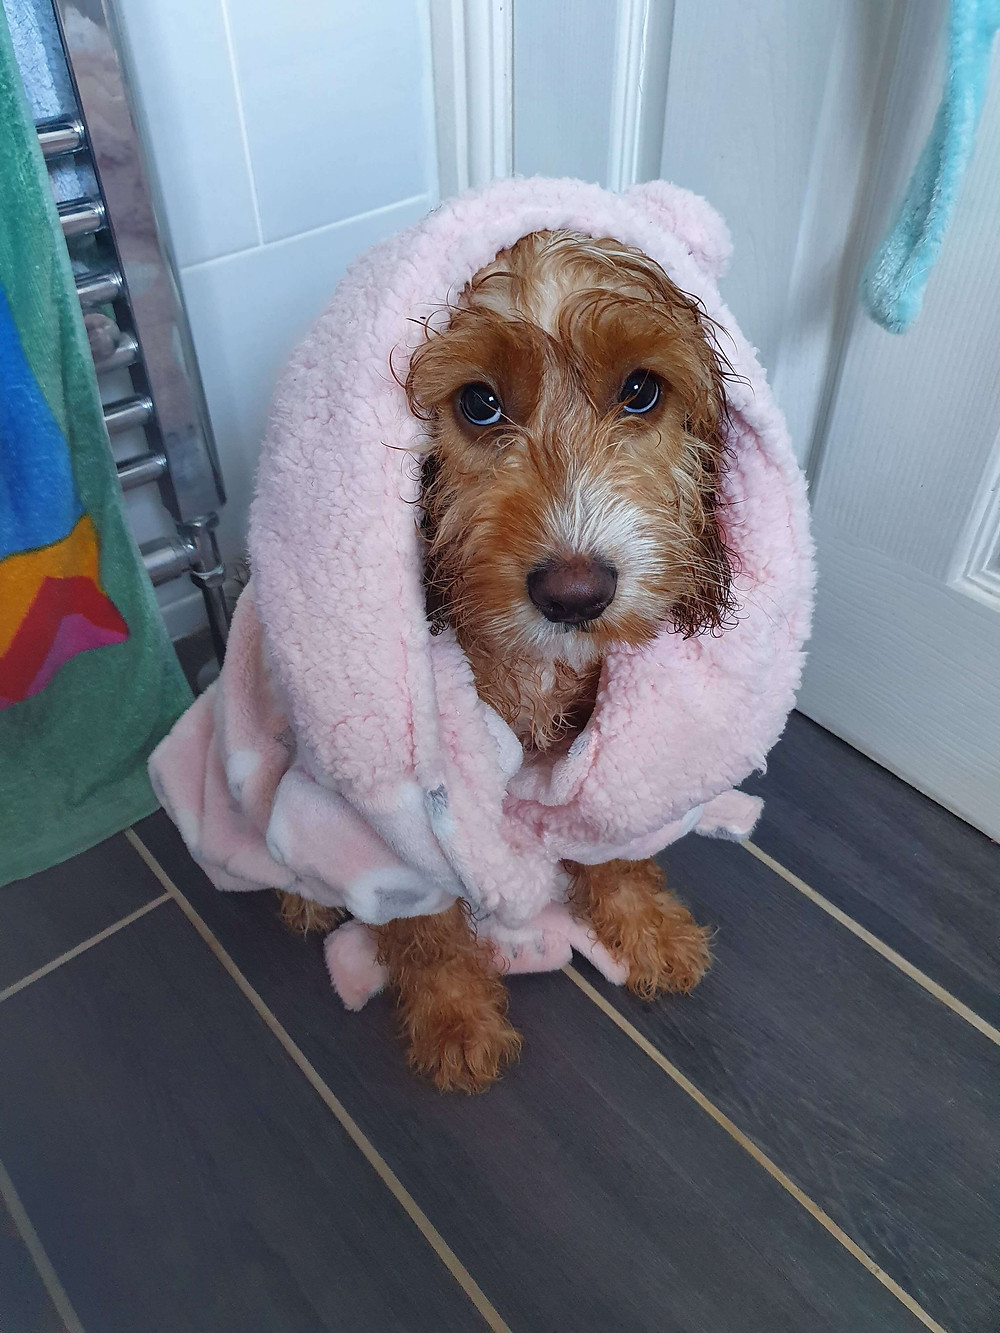 Puppy in a dressing gown